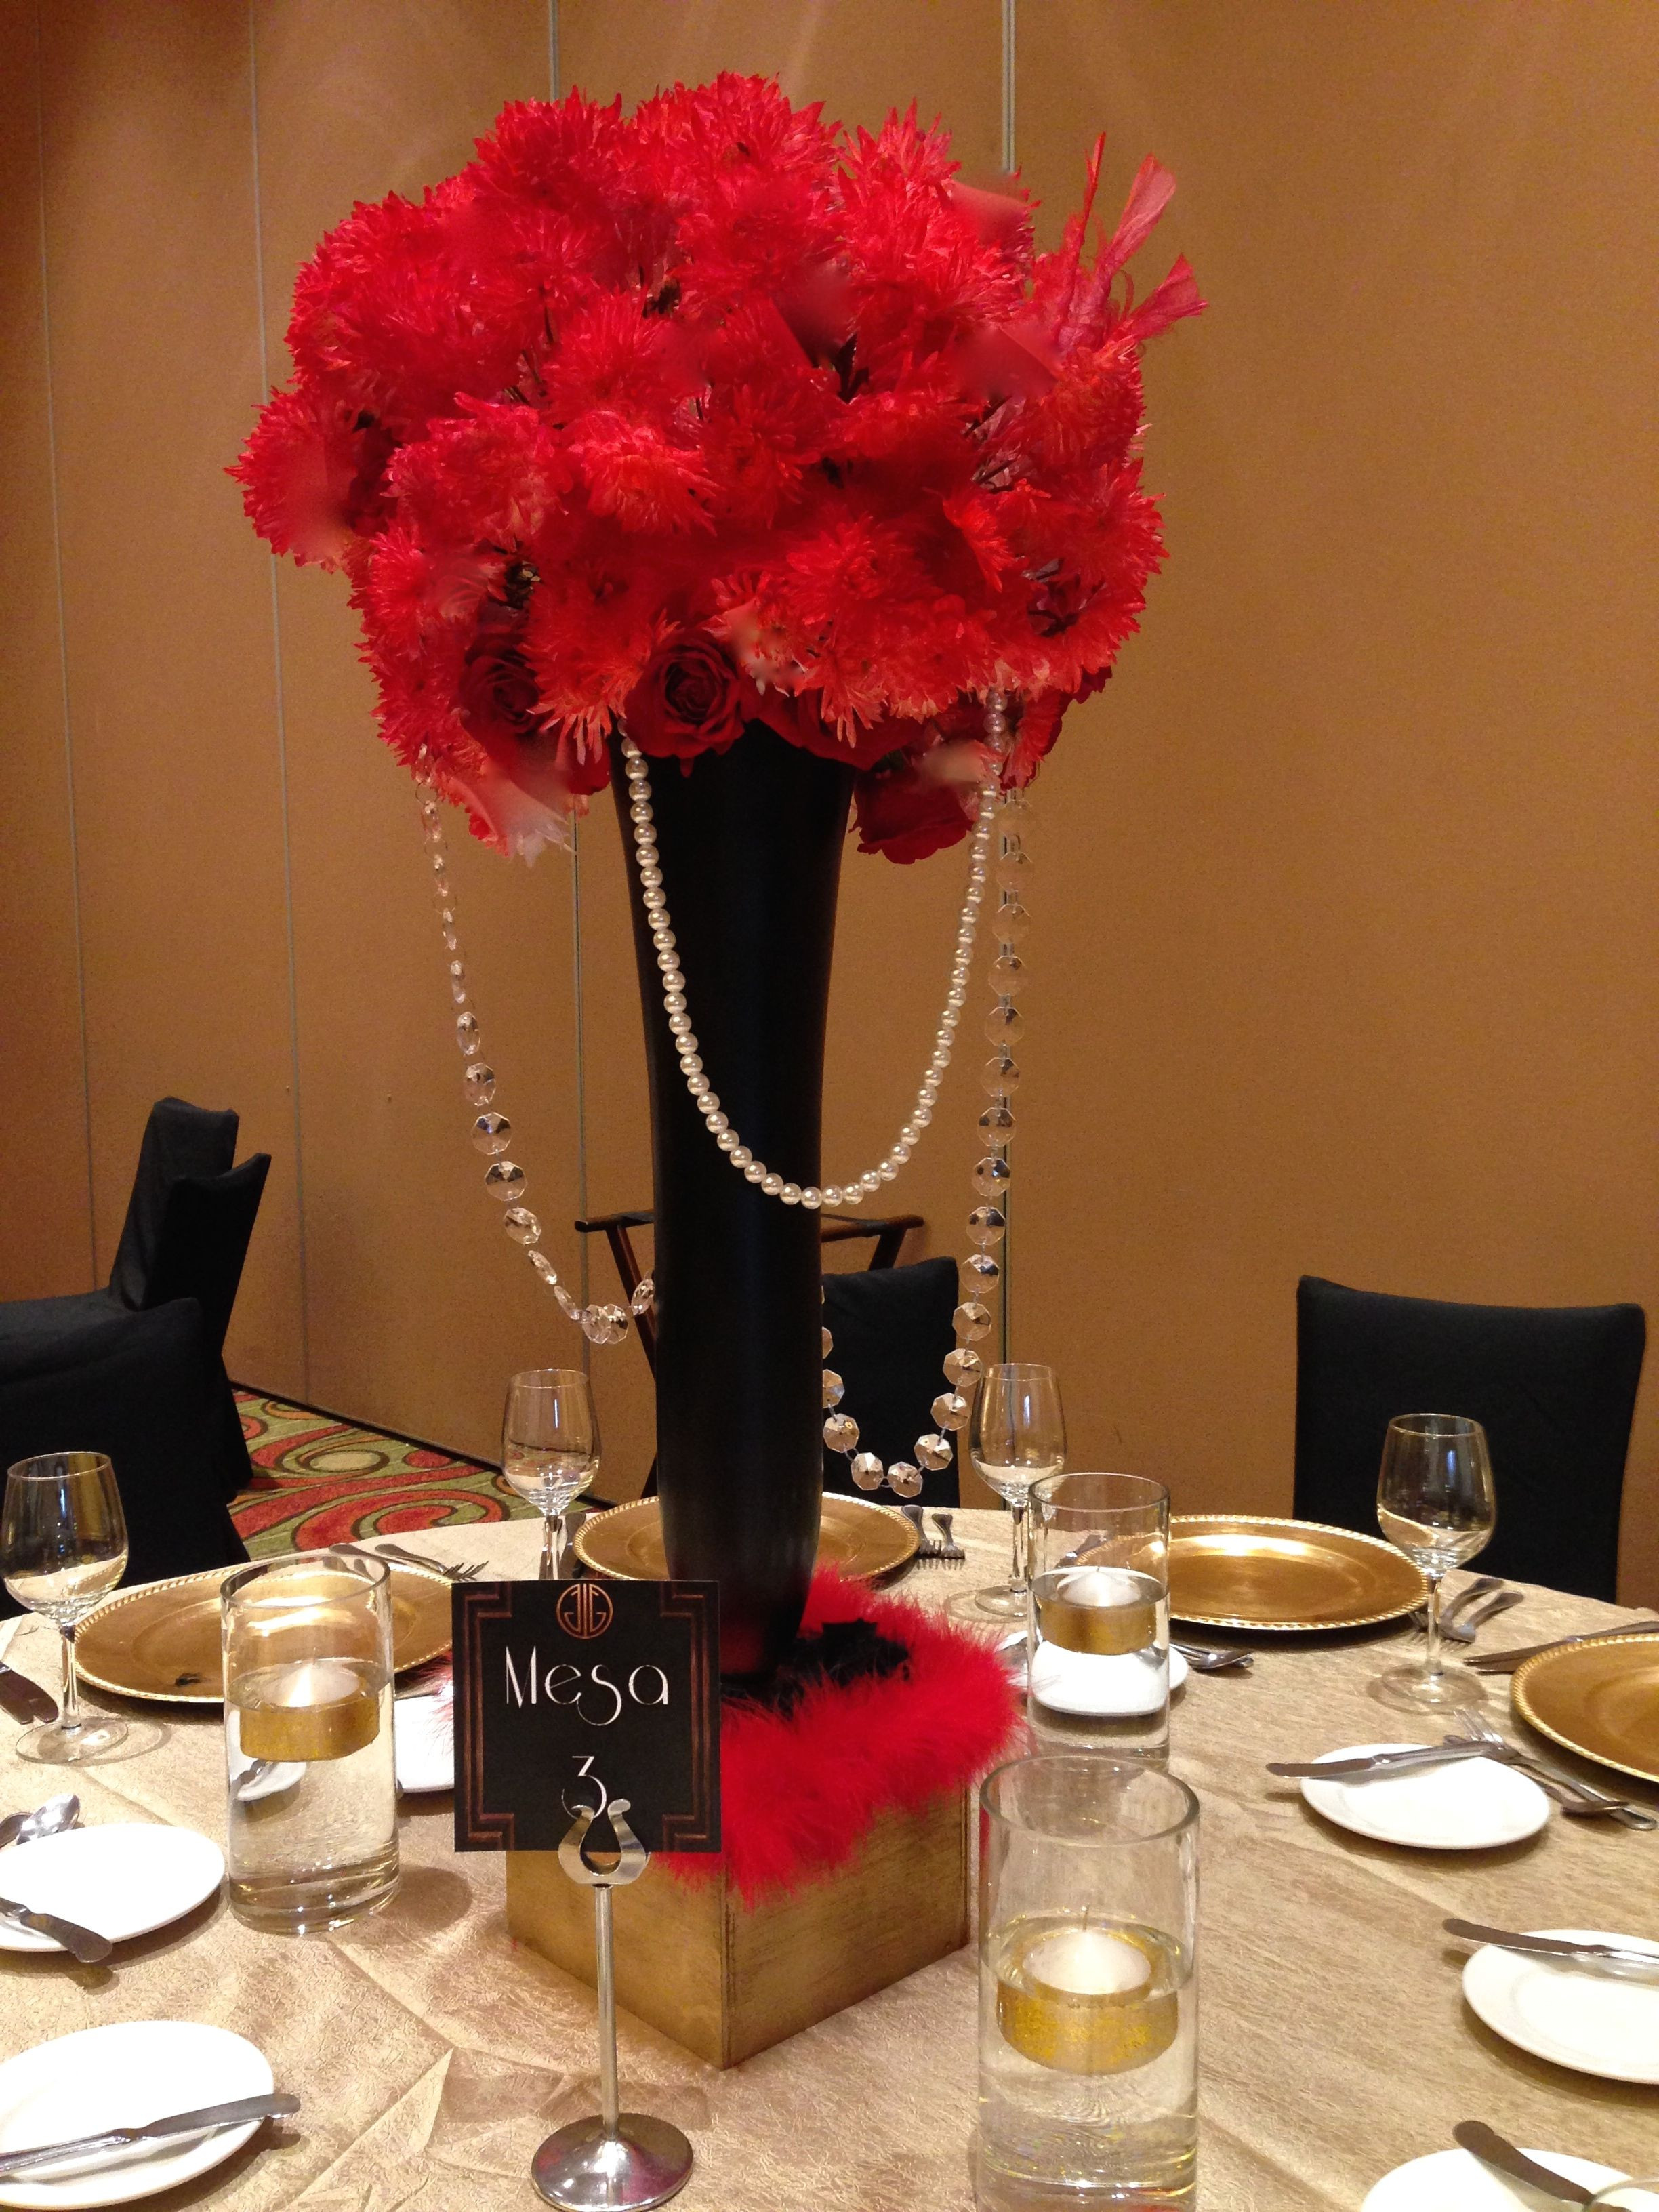 17 Fantastic 16 Inch Vase Centerpieces 2021 free download 16 inch vase centerpieces of tall centerpiece red roses and black vases great gatsby theme intended for tall centerpiece red roses and black vases great gatsby theme